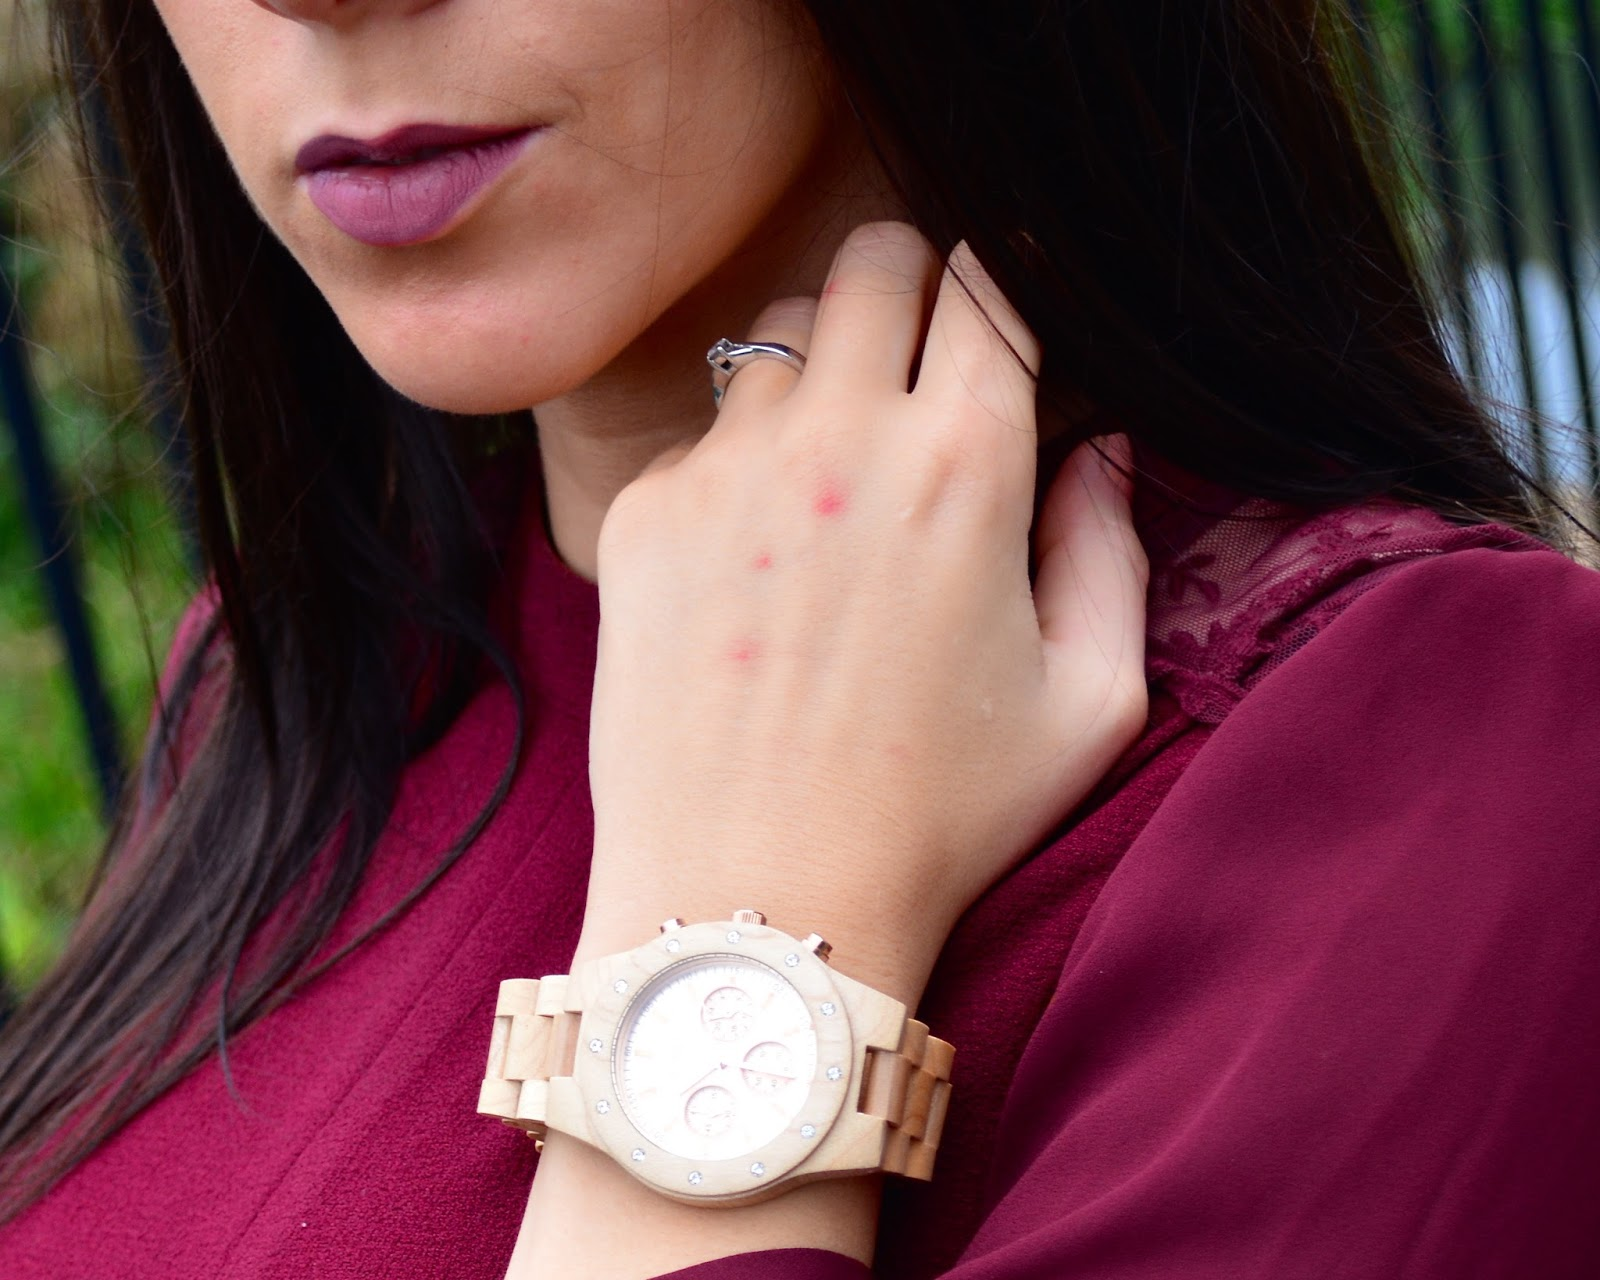 Lord Wooden Watch, Rose Gold Wooden Watch, Watch, Rose Gold Watch, Accessories